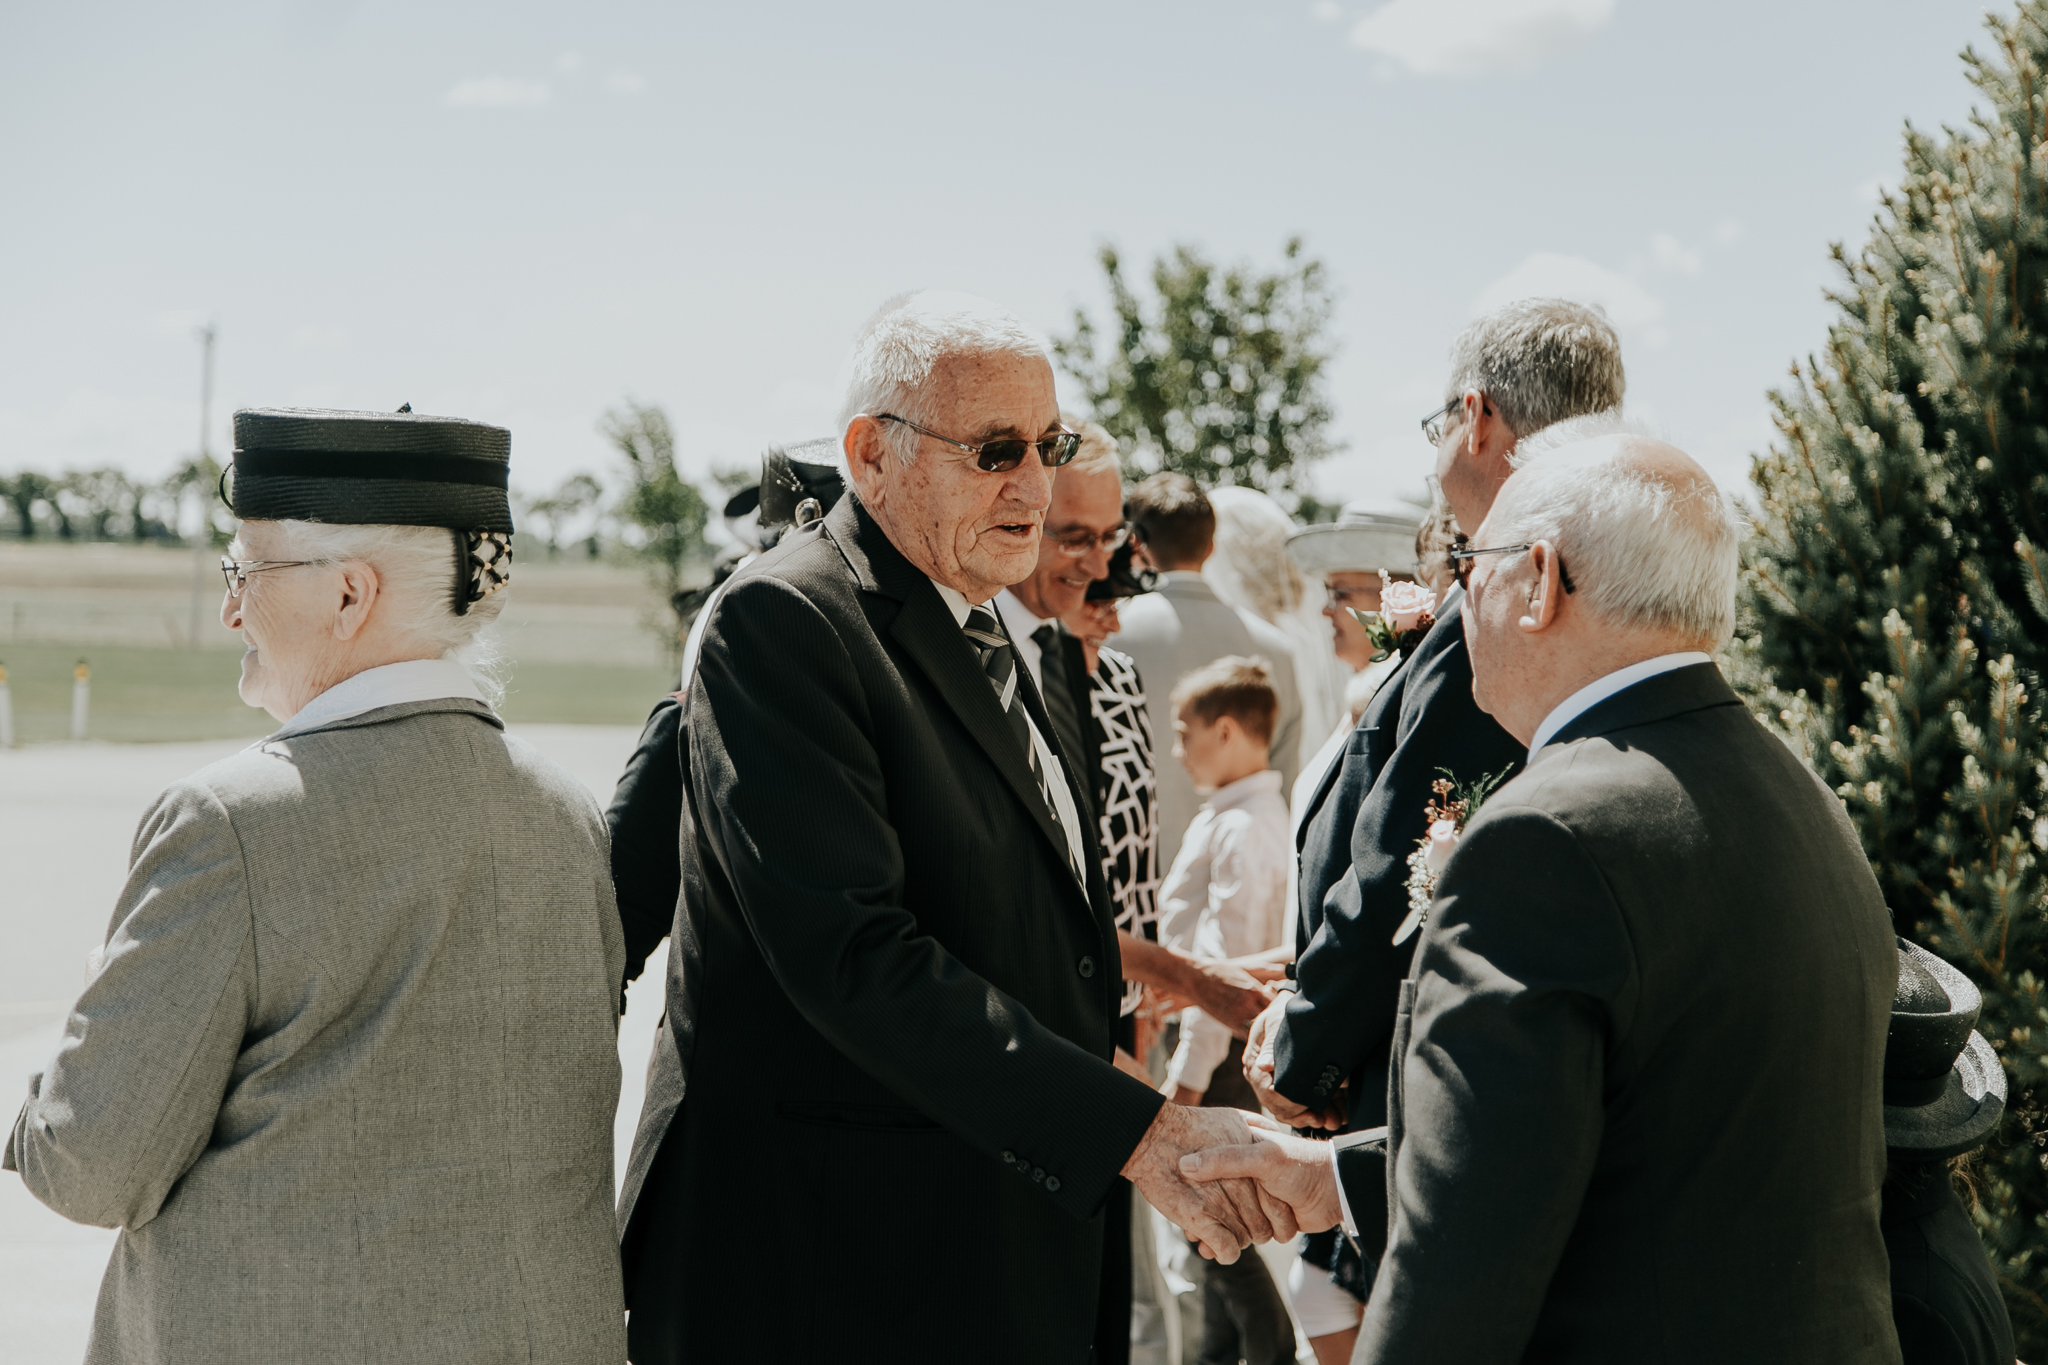 lethbridge-wedding-photographer-love-and-be-loved-photography-steven-marlene-reformed-church-photo-picture-image-23.jpg